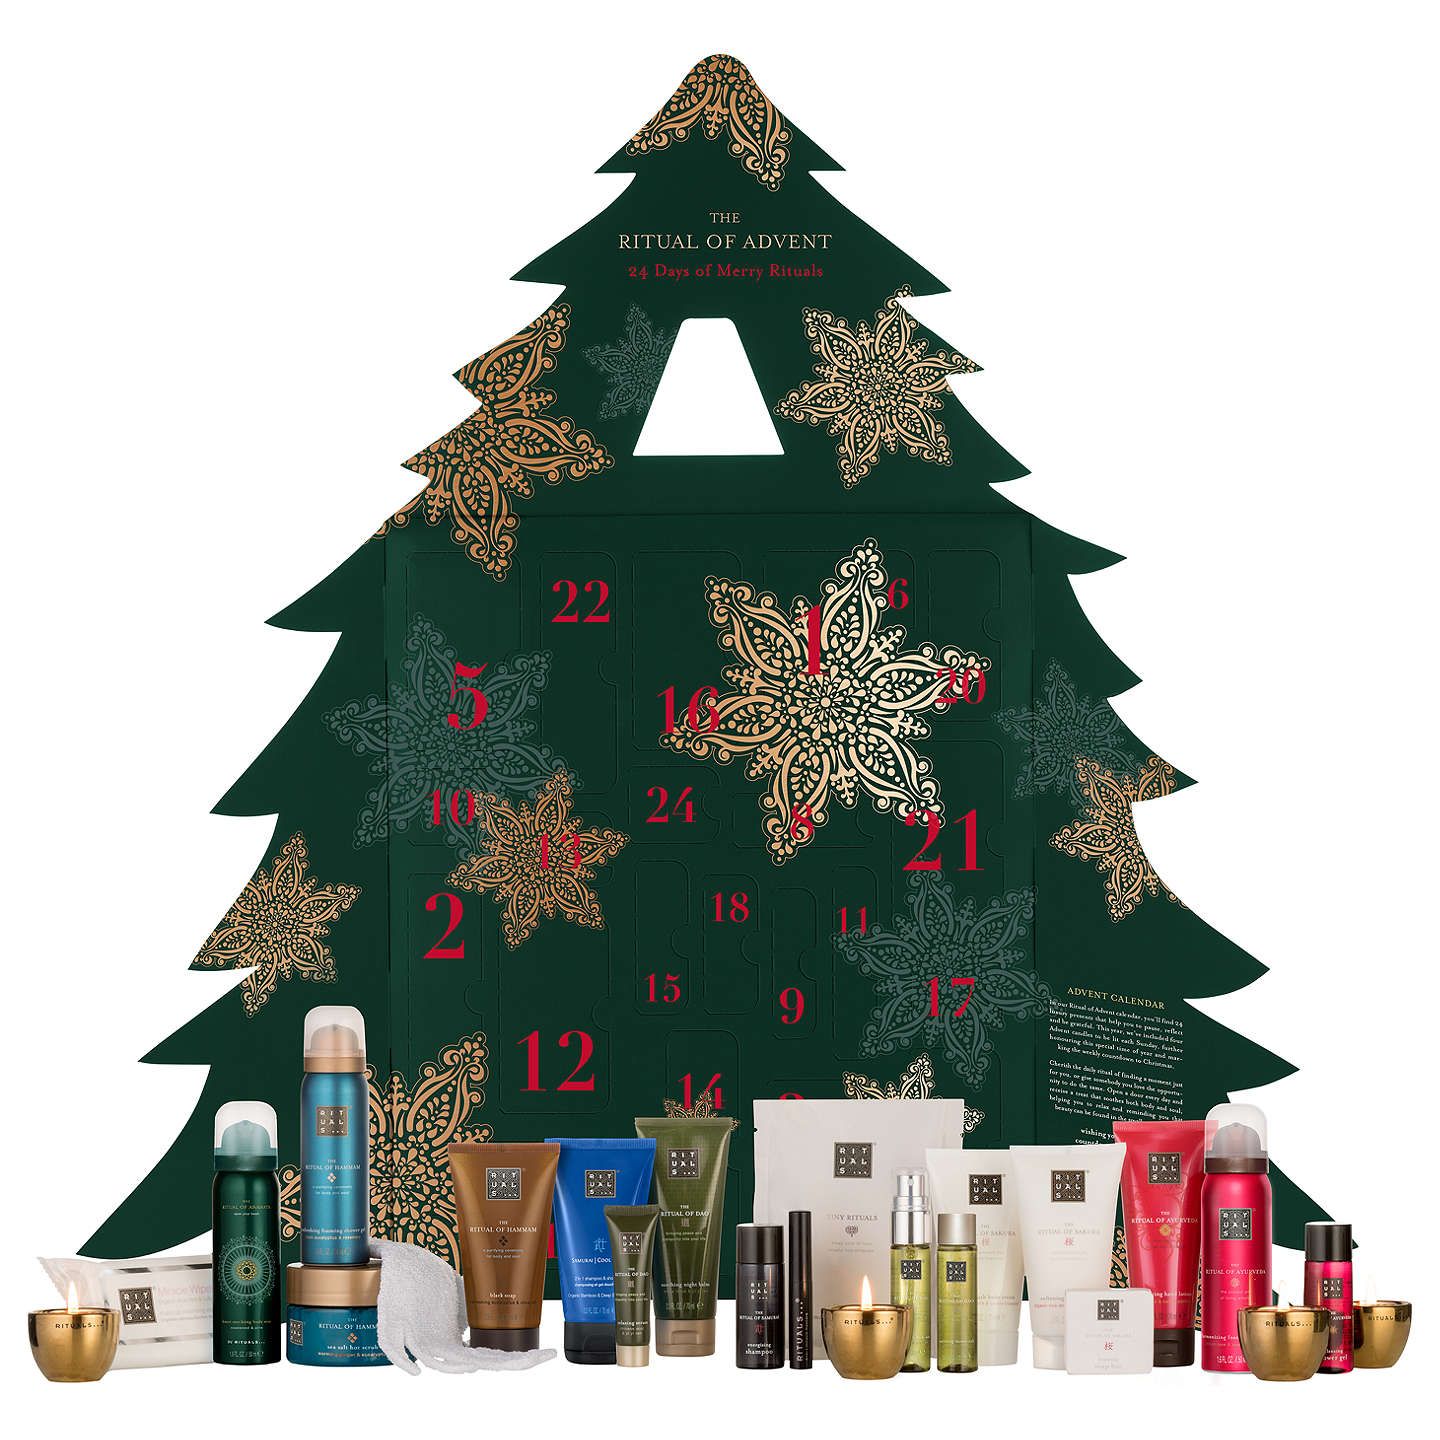 BuyRituals 'The Ritual Of Advent' Beauty Calendar Online at johnlewis.com